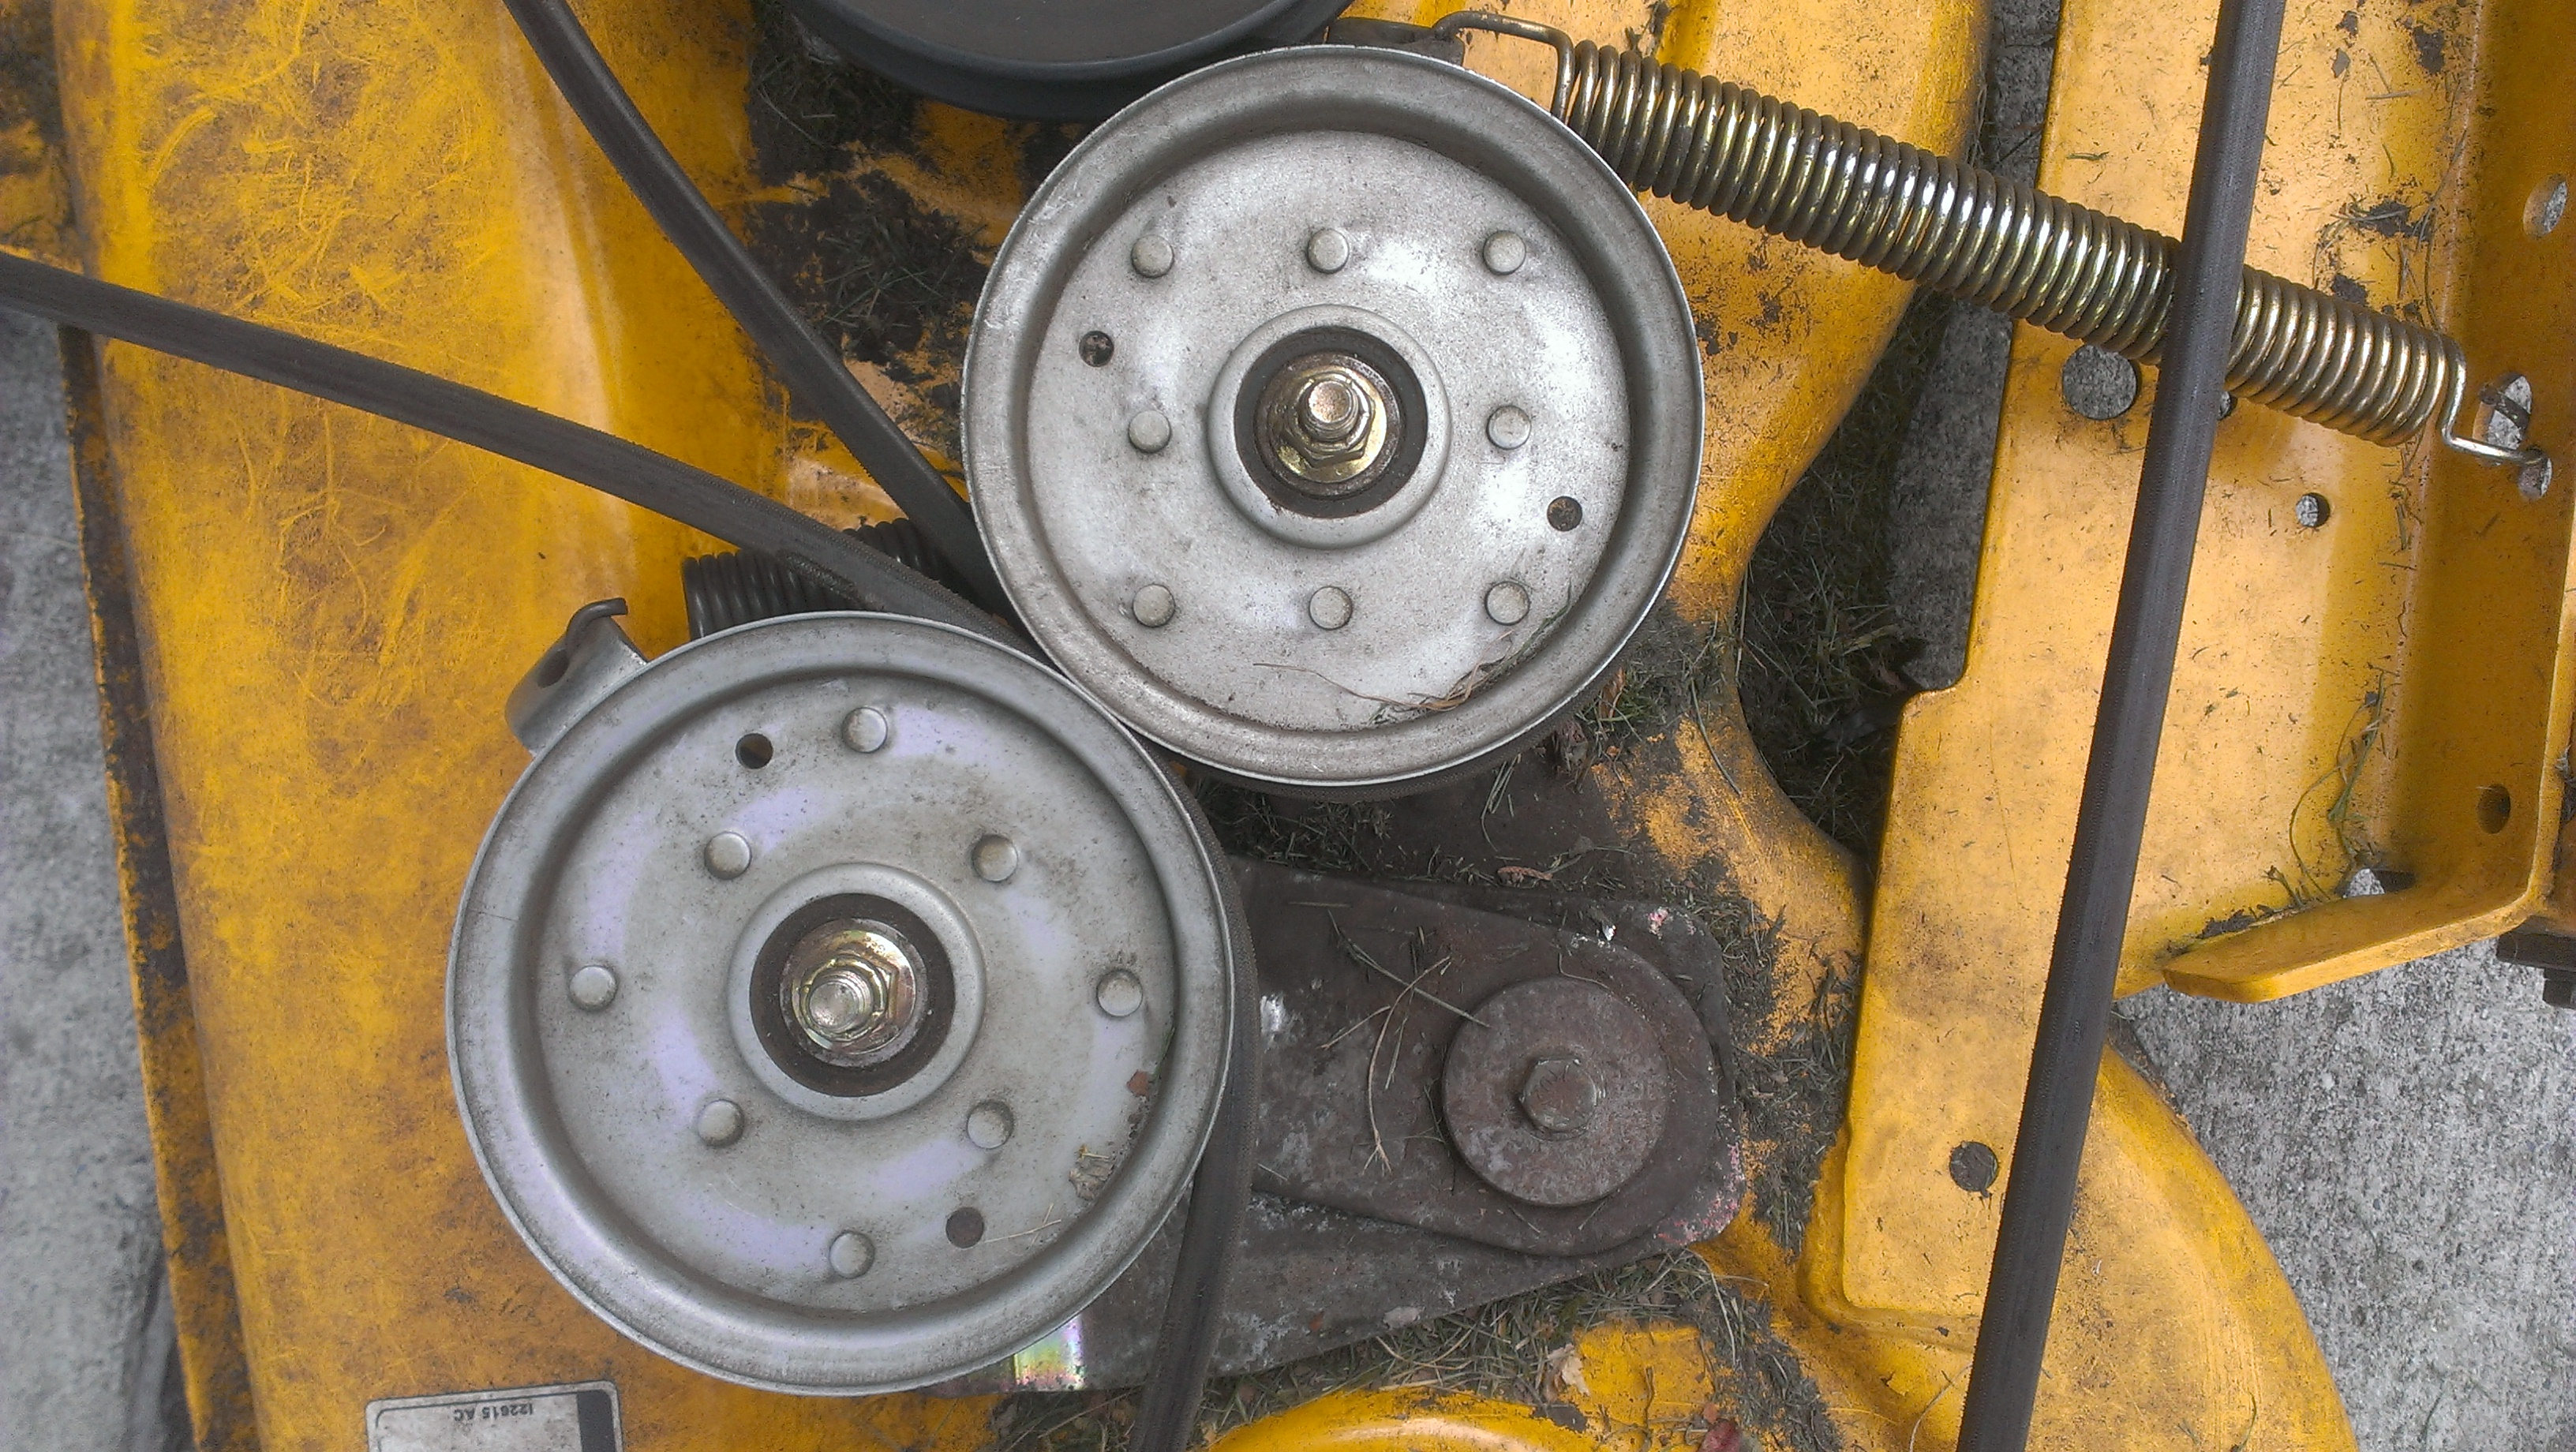 wiring diagram for a 1045 cub cadet mower  wiring  free